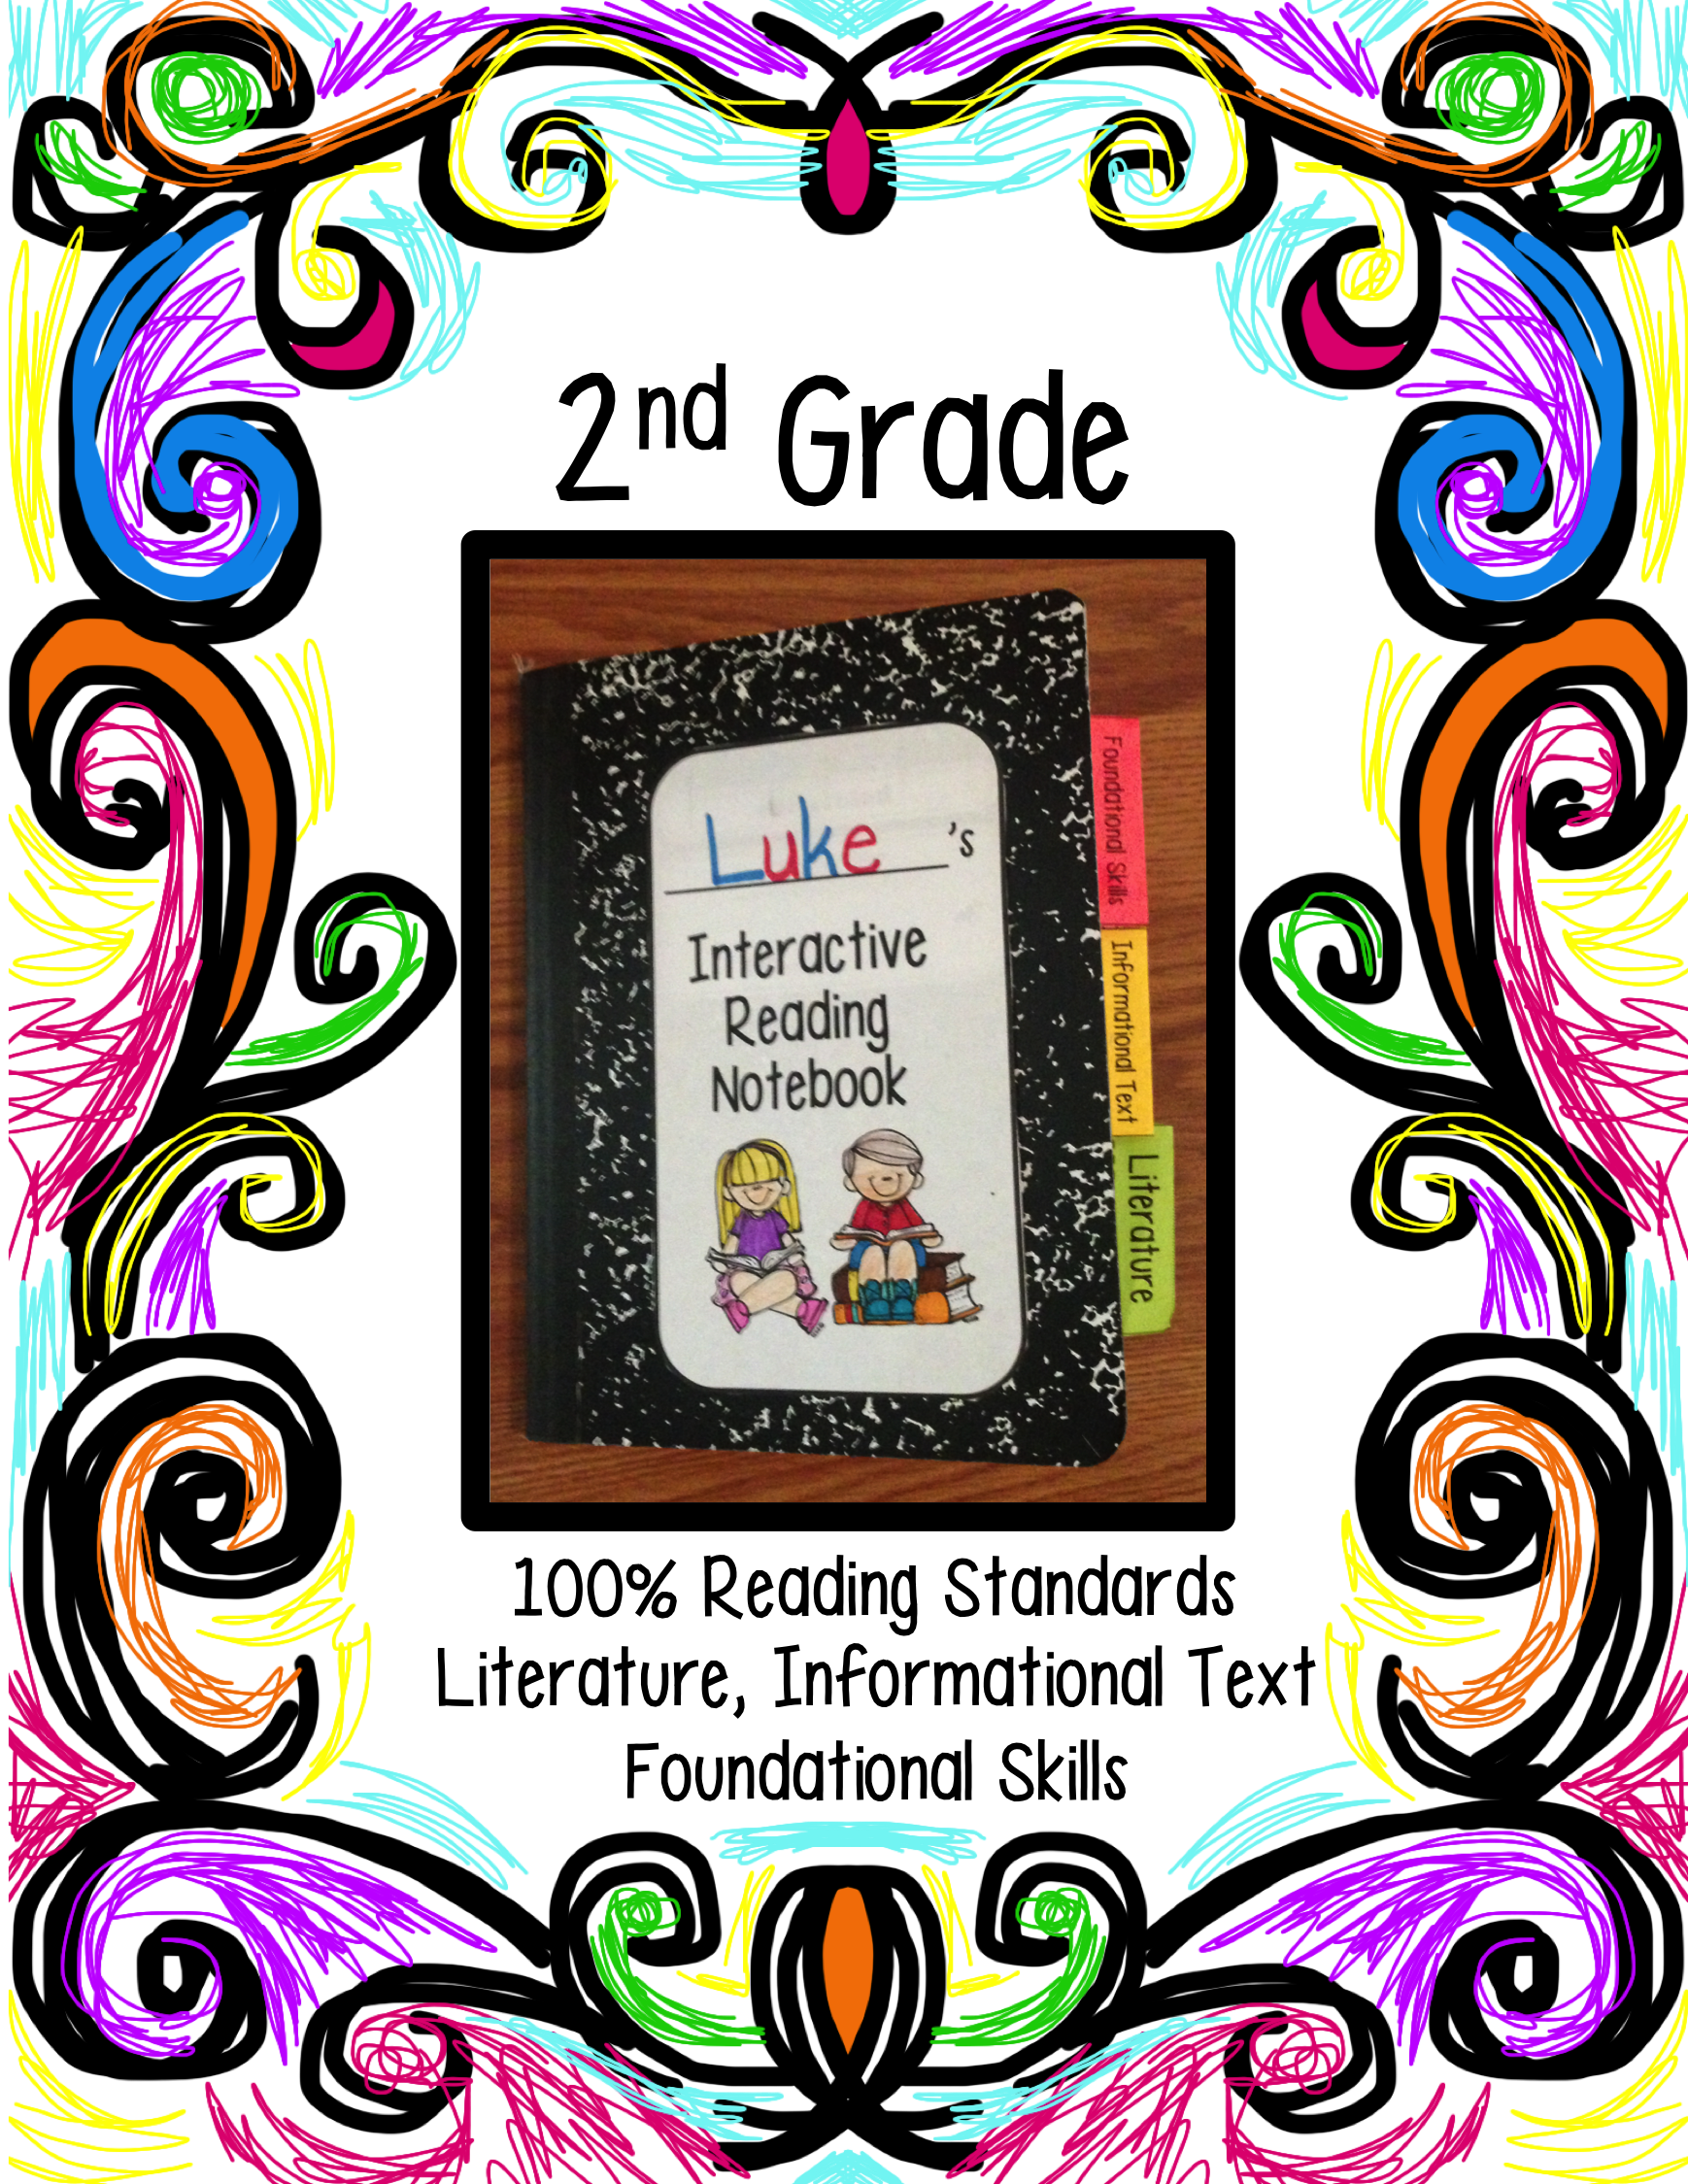 2nd Grade Common Core Tools For Interactive Reading